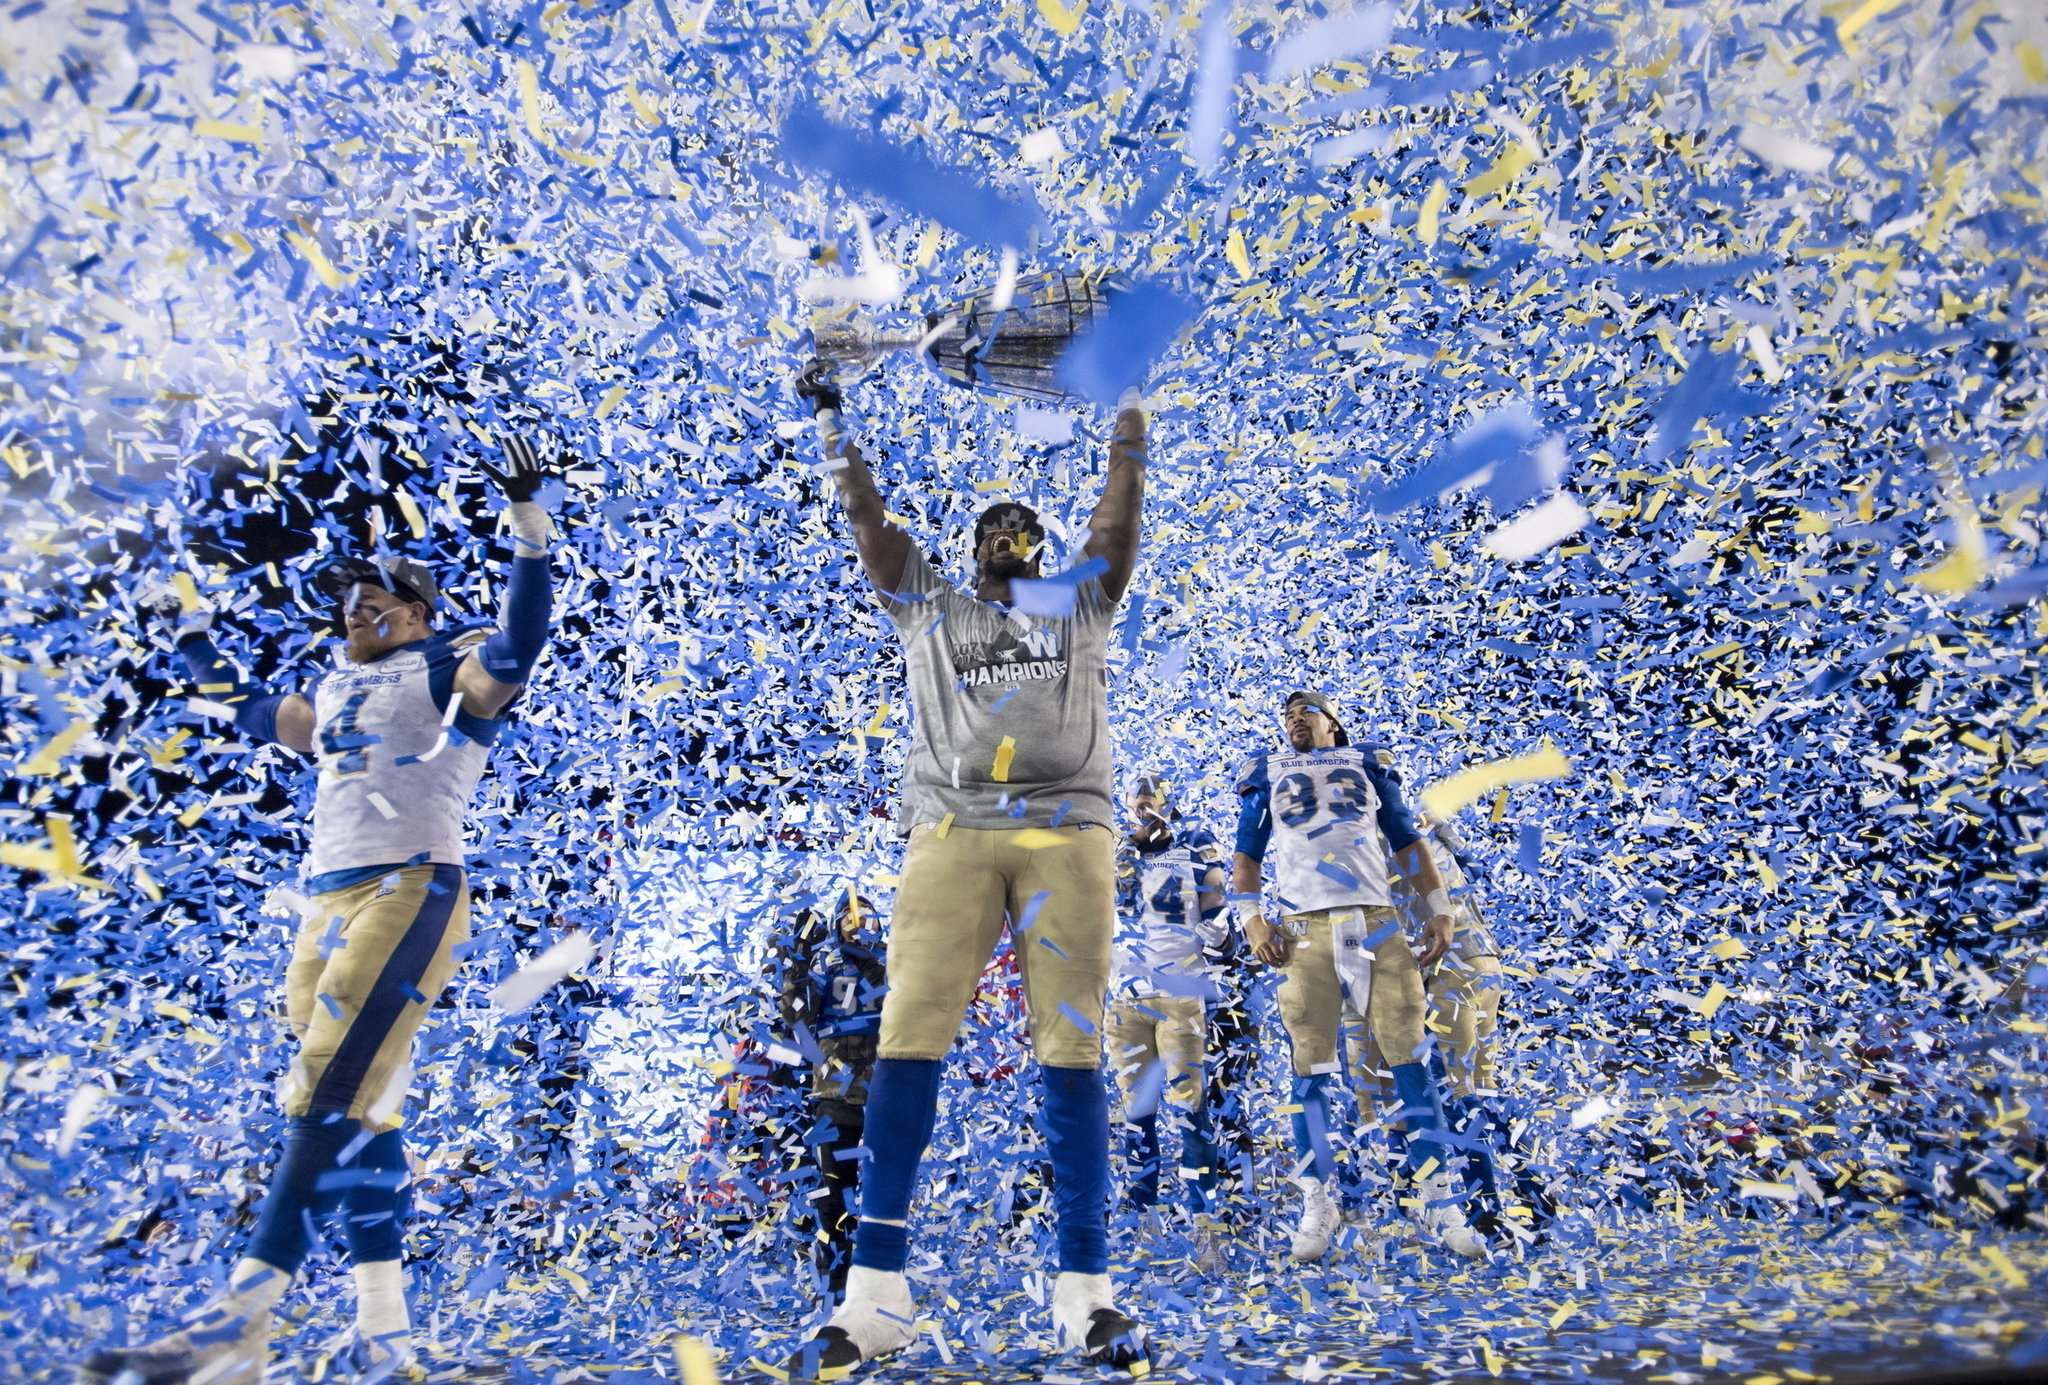 The Winnipeg Blue Bombers won their first Grey Cup in 29 years on Nov. 24 in Calgary. (Nathan Denette / The Canadian Press files)</p>